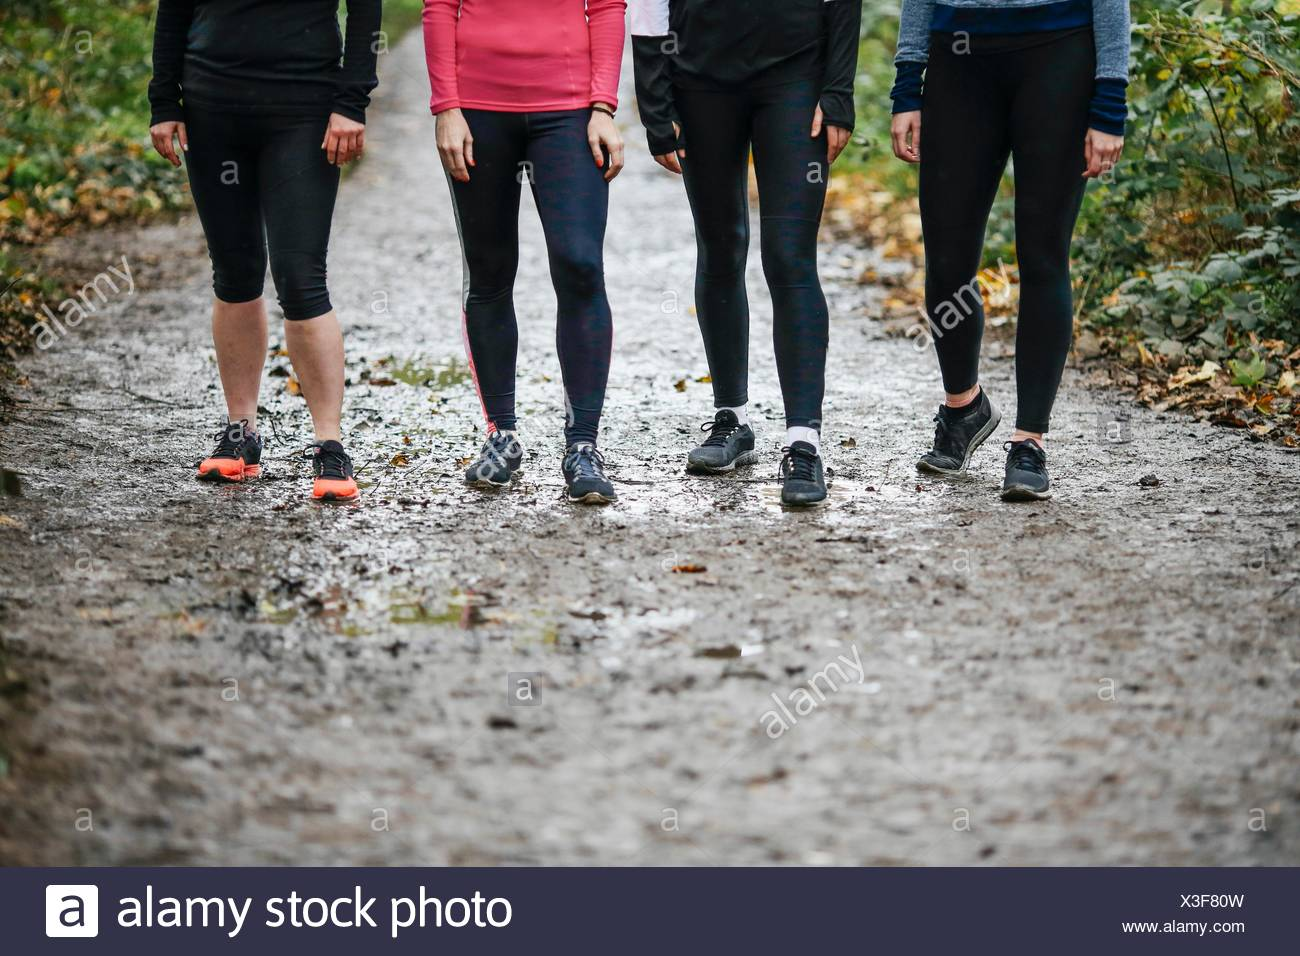 Waist down of teenage girl and women runners preparing to run in park - Stock Image